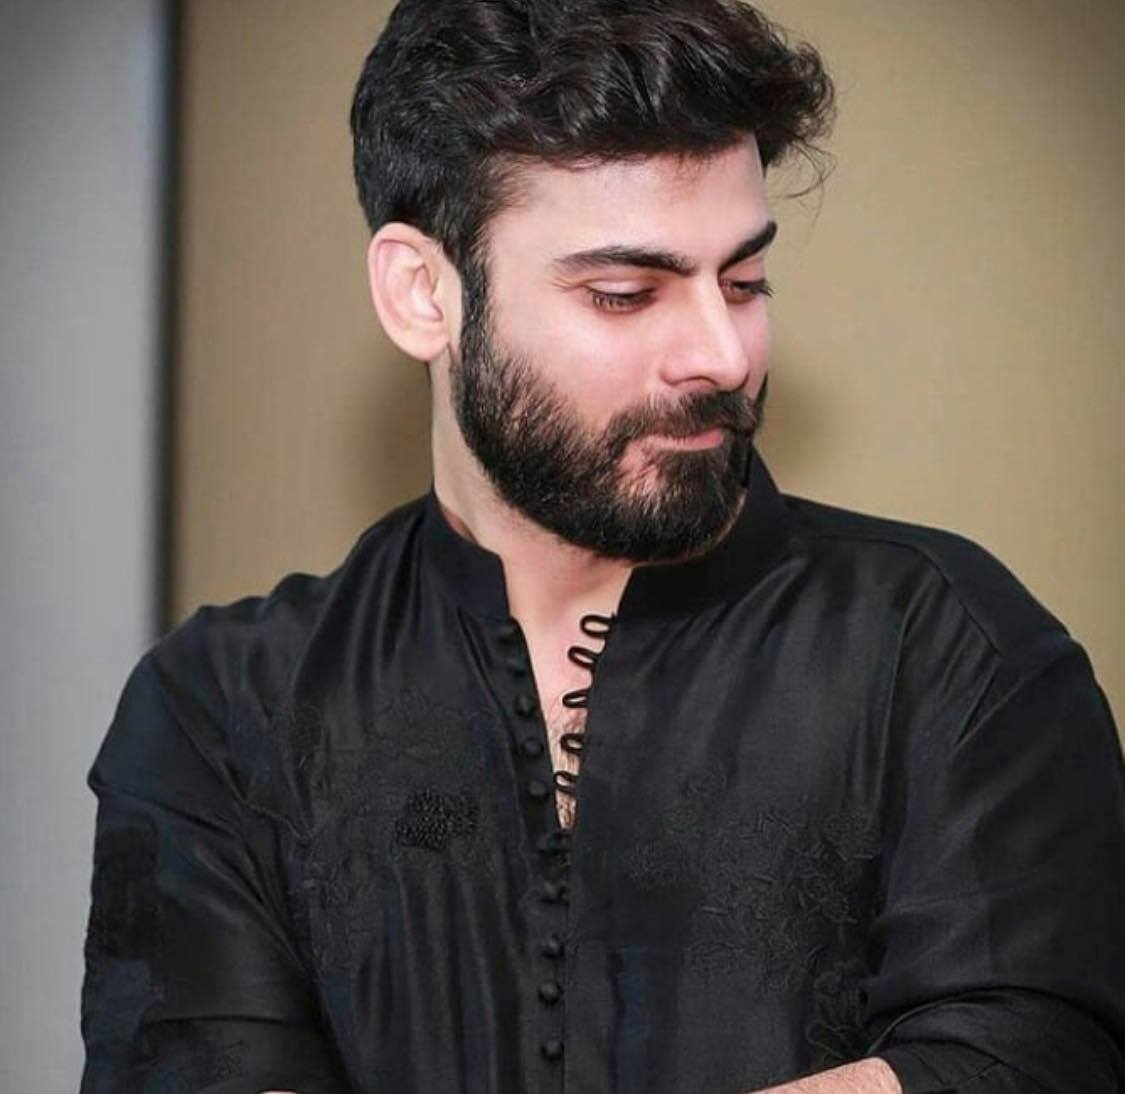 Pakistani Actors Who Should Make a Comeback In Dramas In 2020